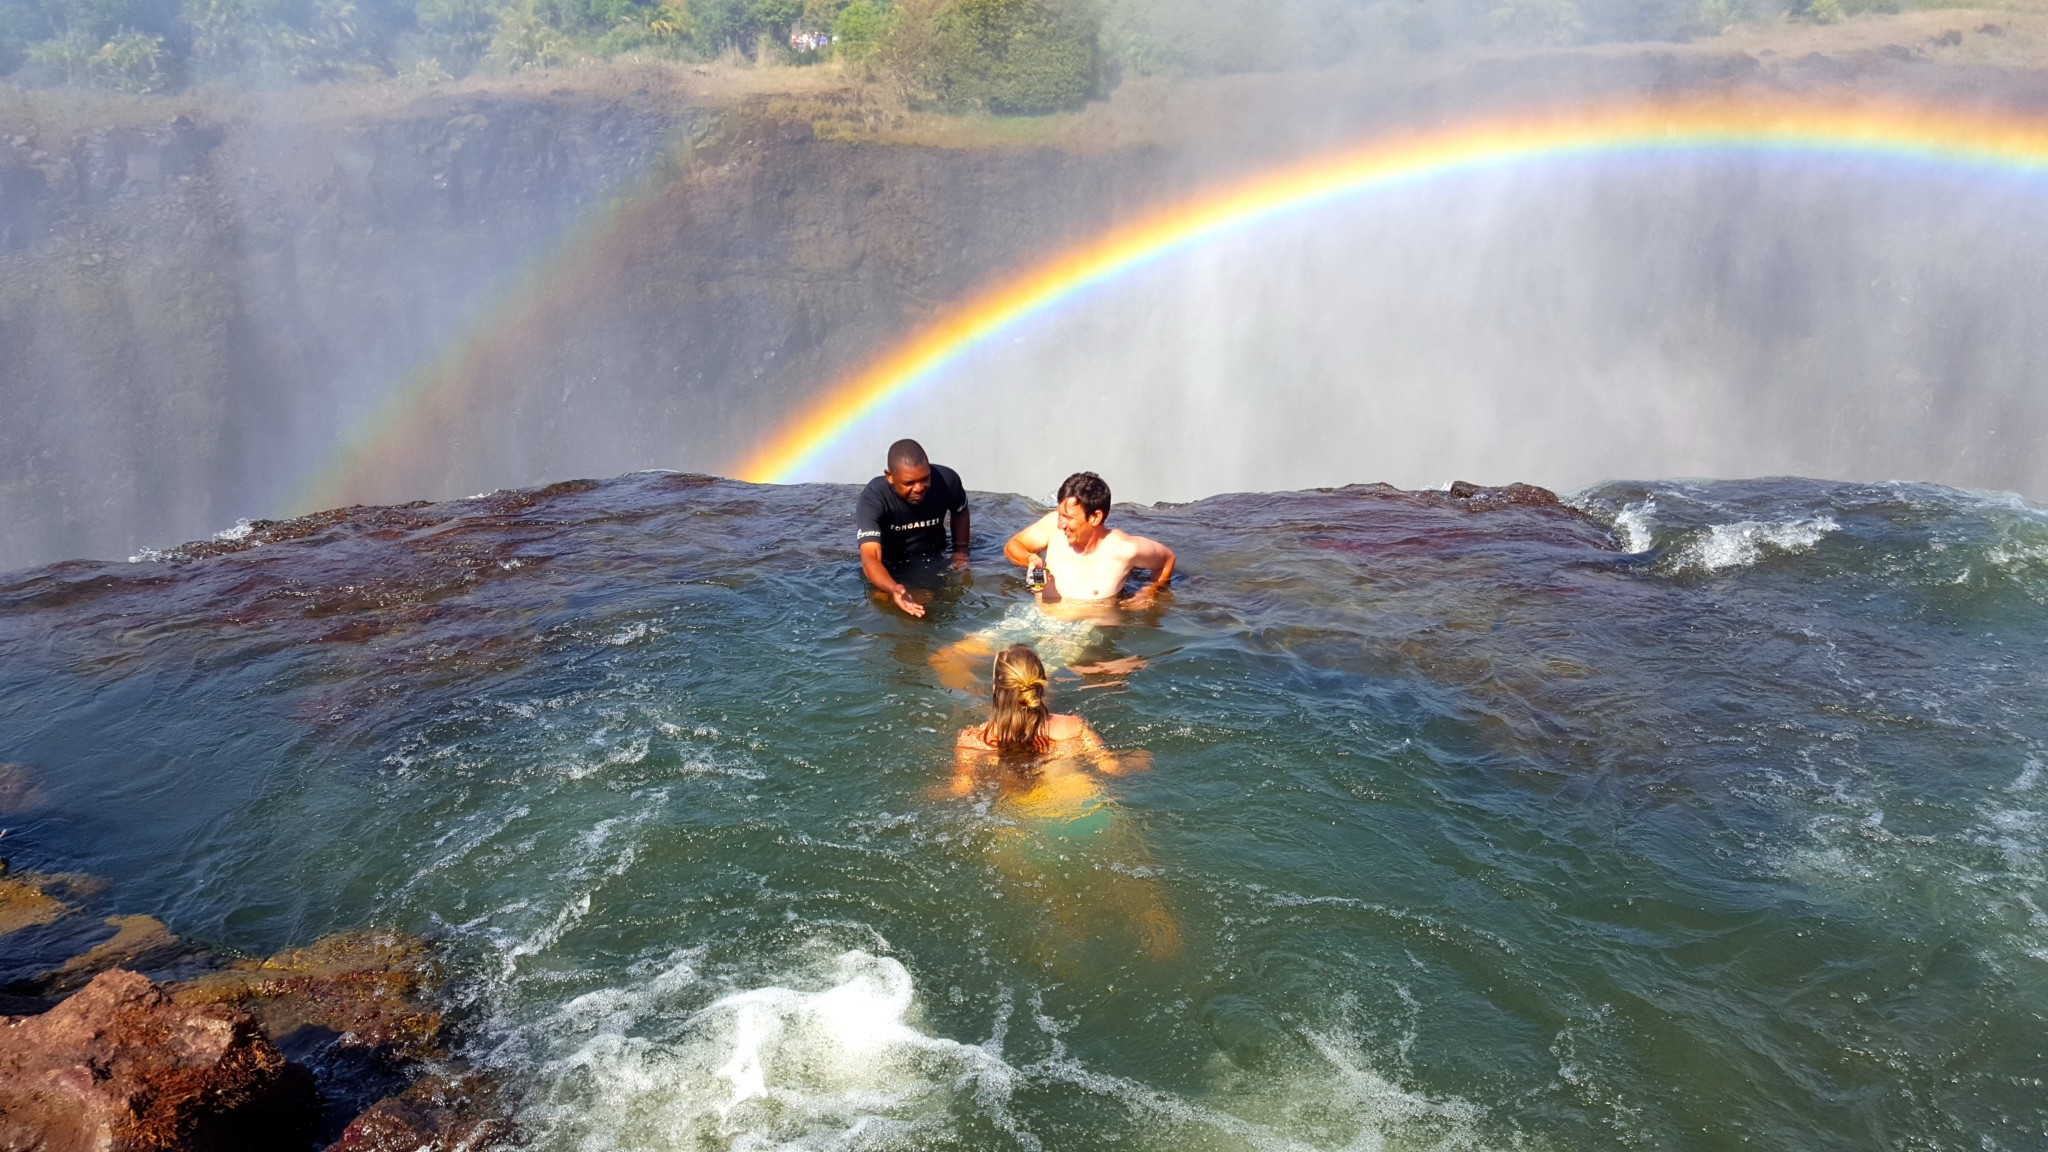 Devil's Pool Livingstone, Travel Guide: How To Visit Devil's Pool Victoria Falls (And Survive)